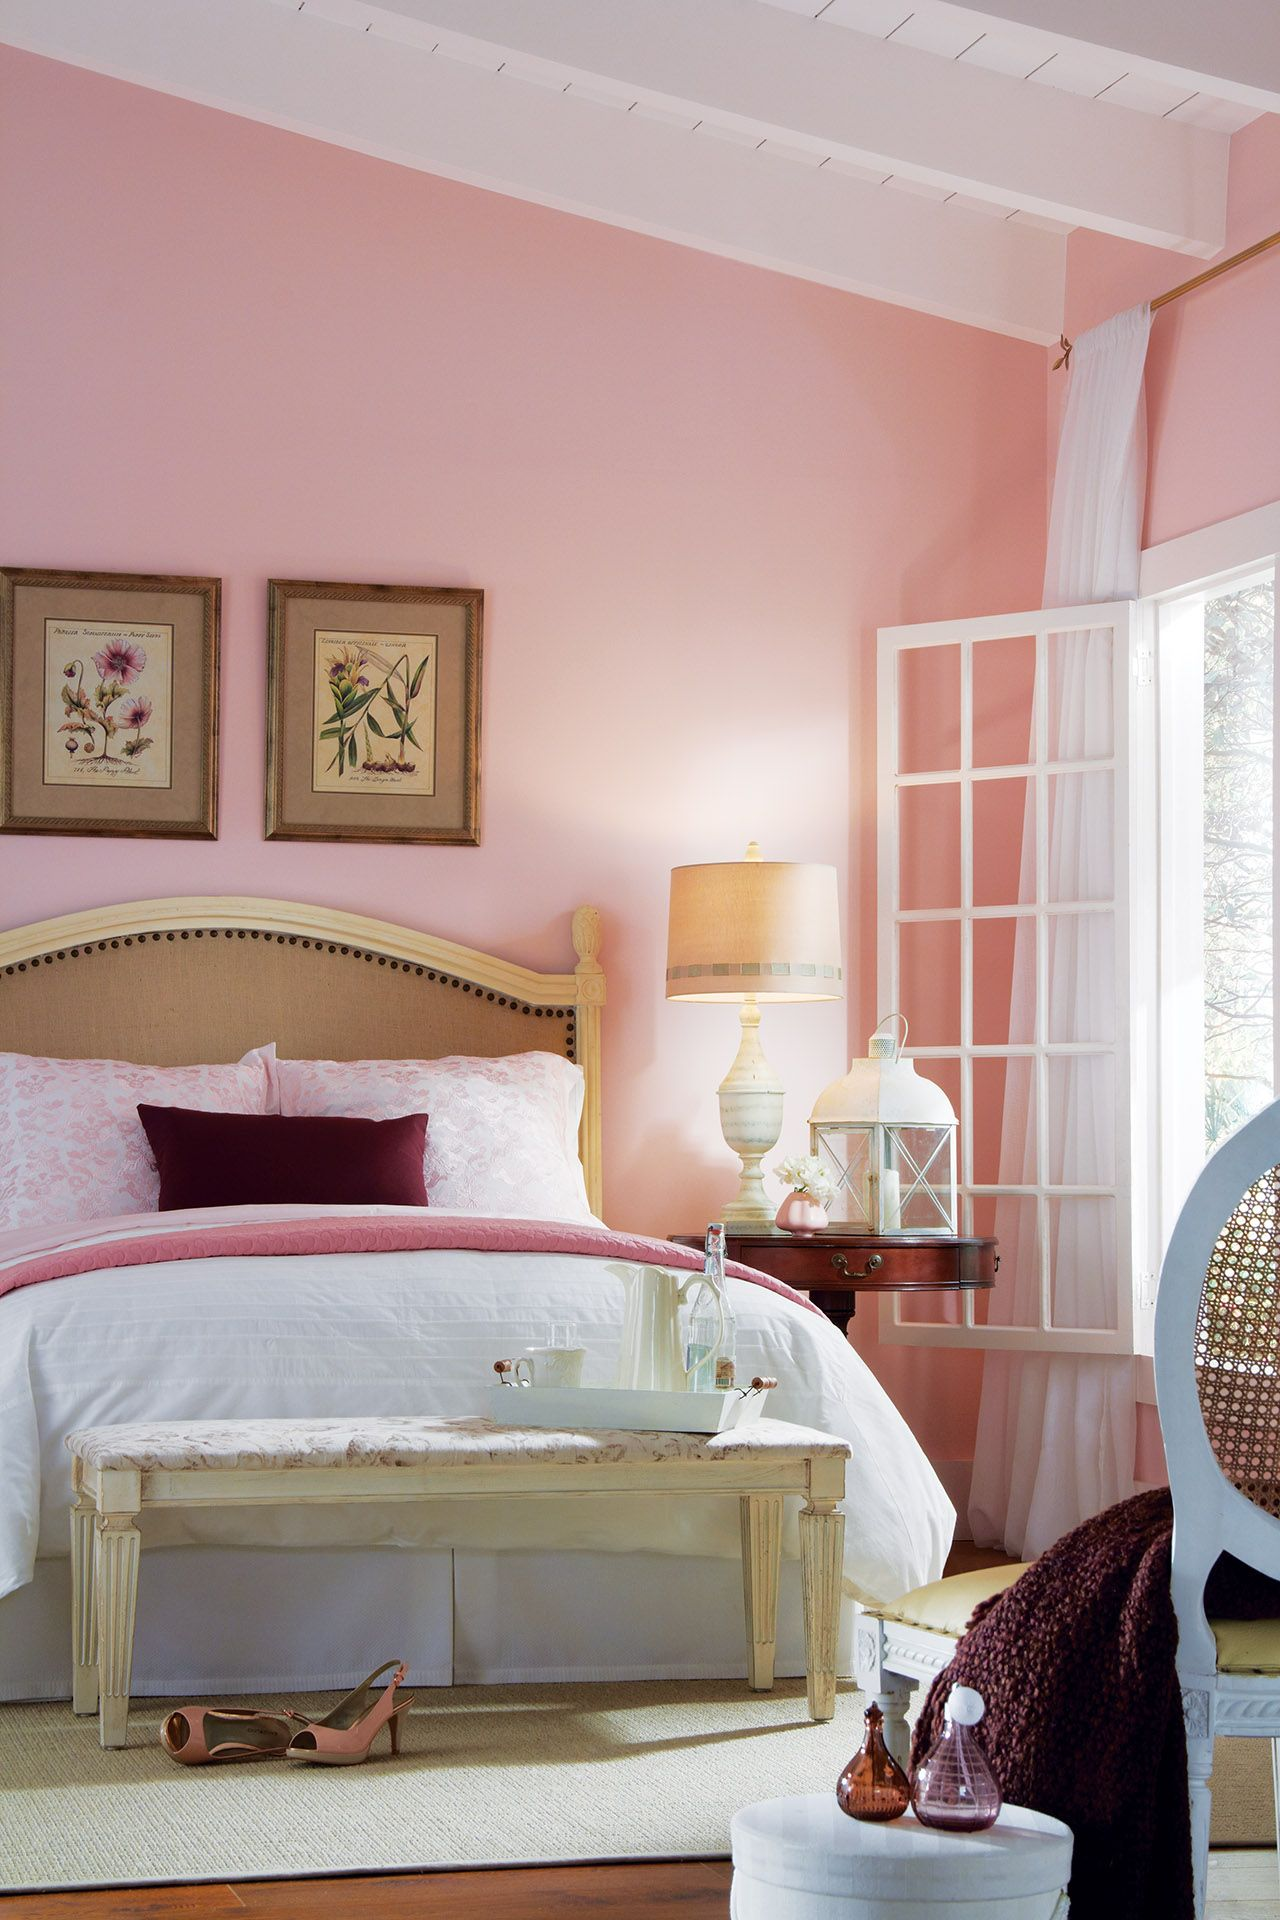 Walls: First Blush 06B-2 Trim and Ceiling: Graceful Swan 04D-1 ...